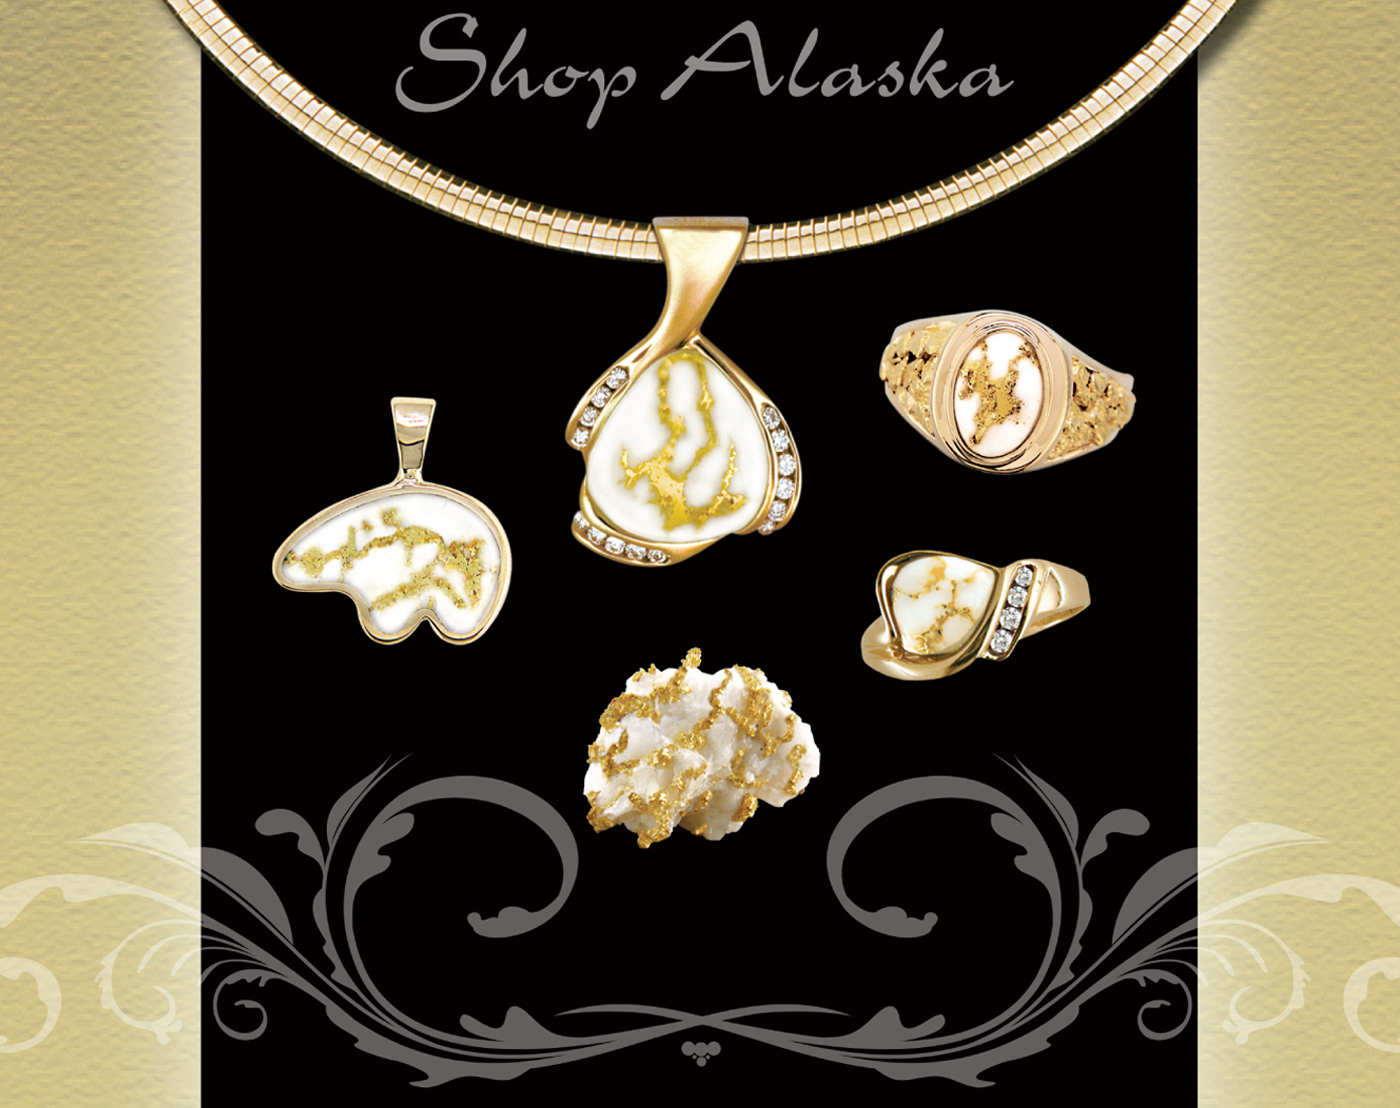 alaska jewelry, anchorage jewelry, alaska jewelers, anchorage jewelers, alaska diamonds, diamonds